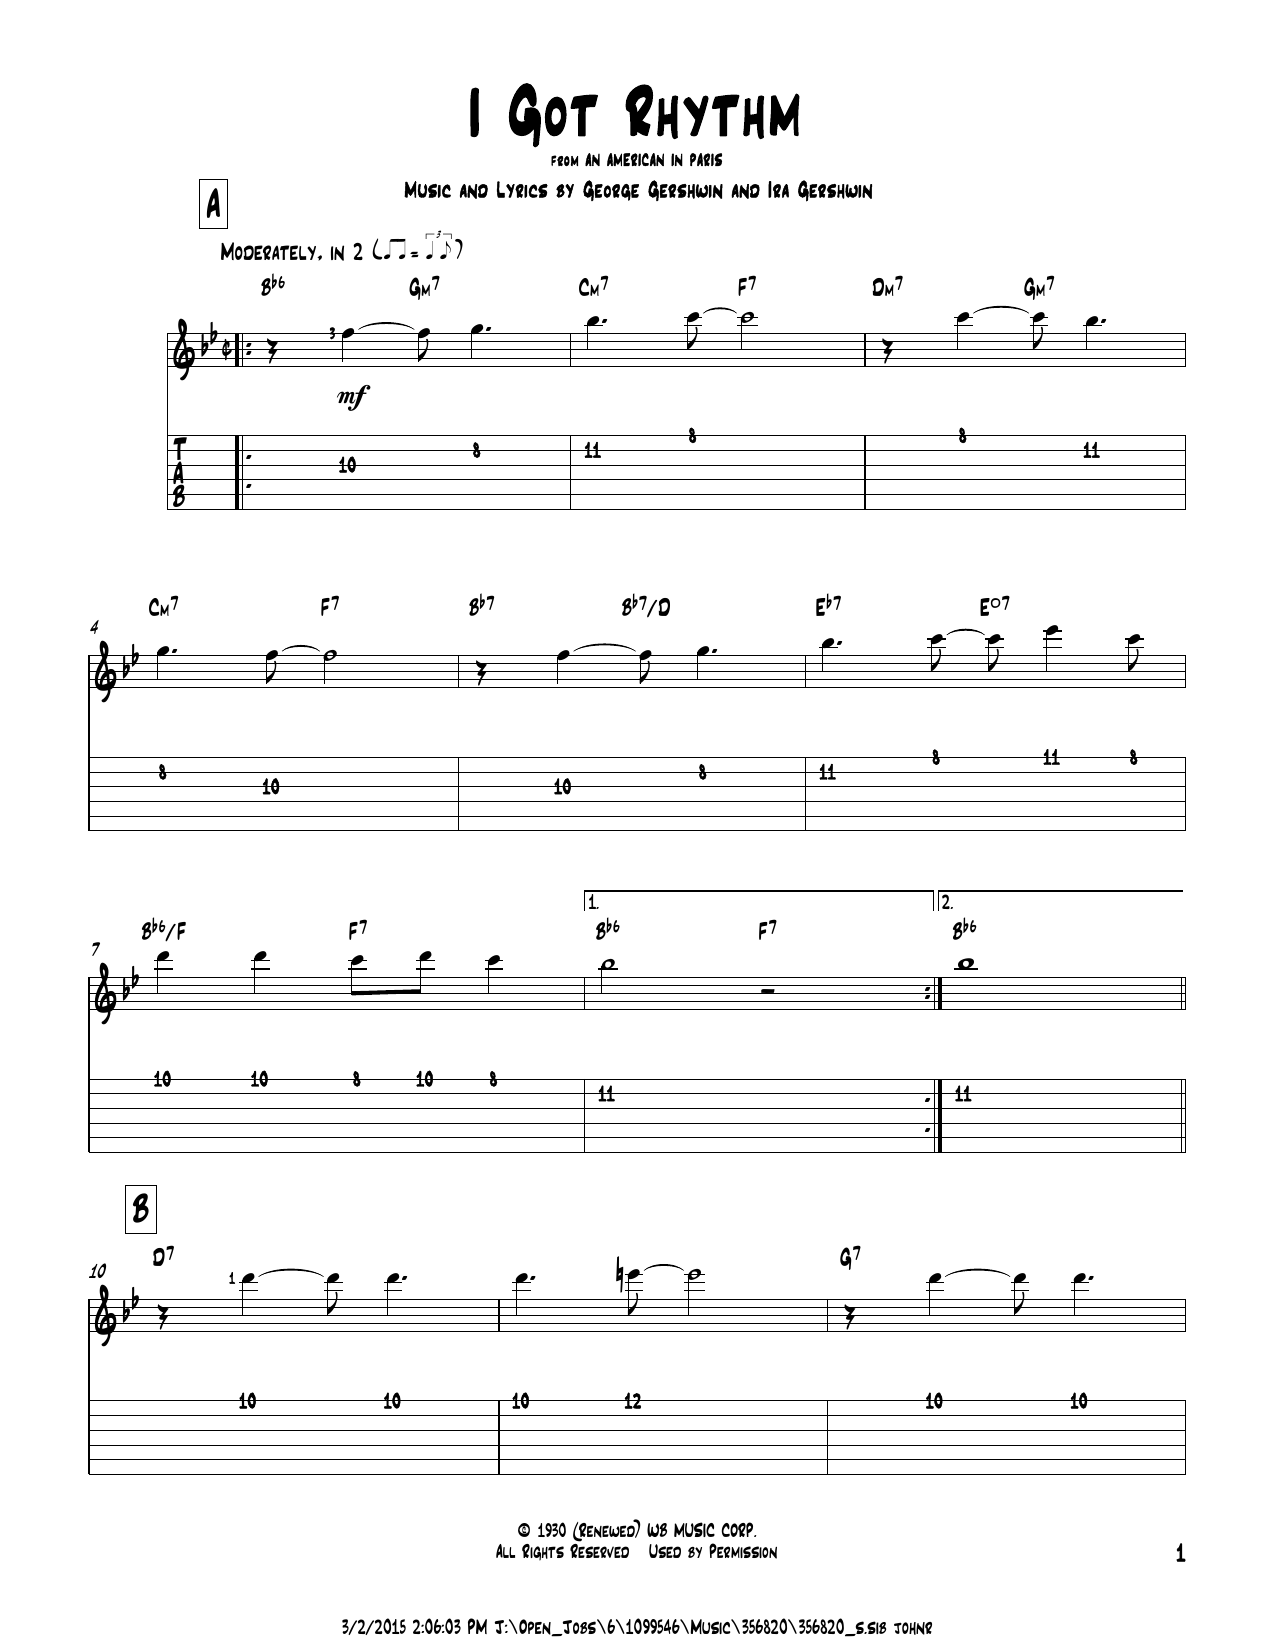 I Got Rhythm Sheet Music